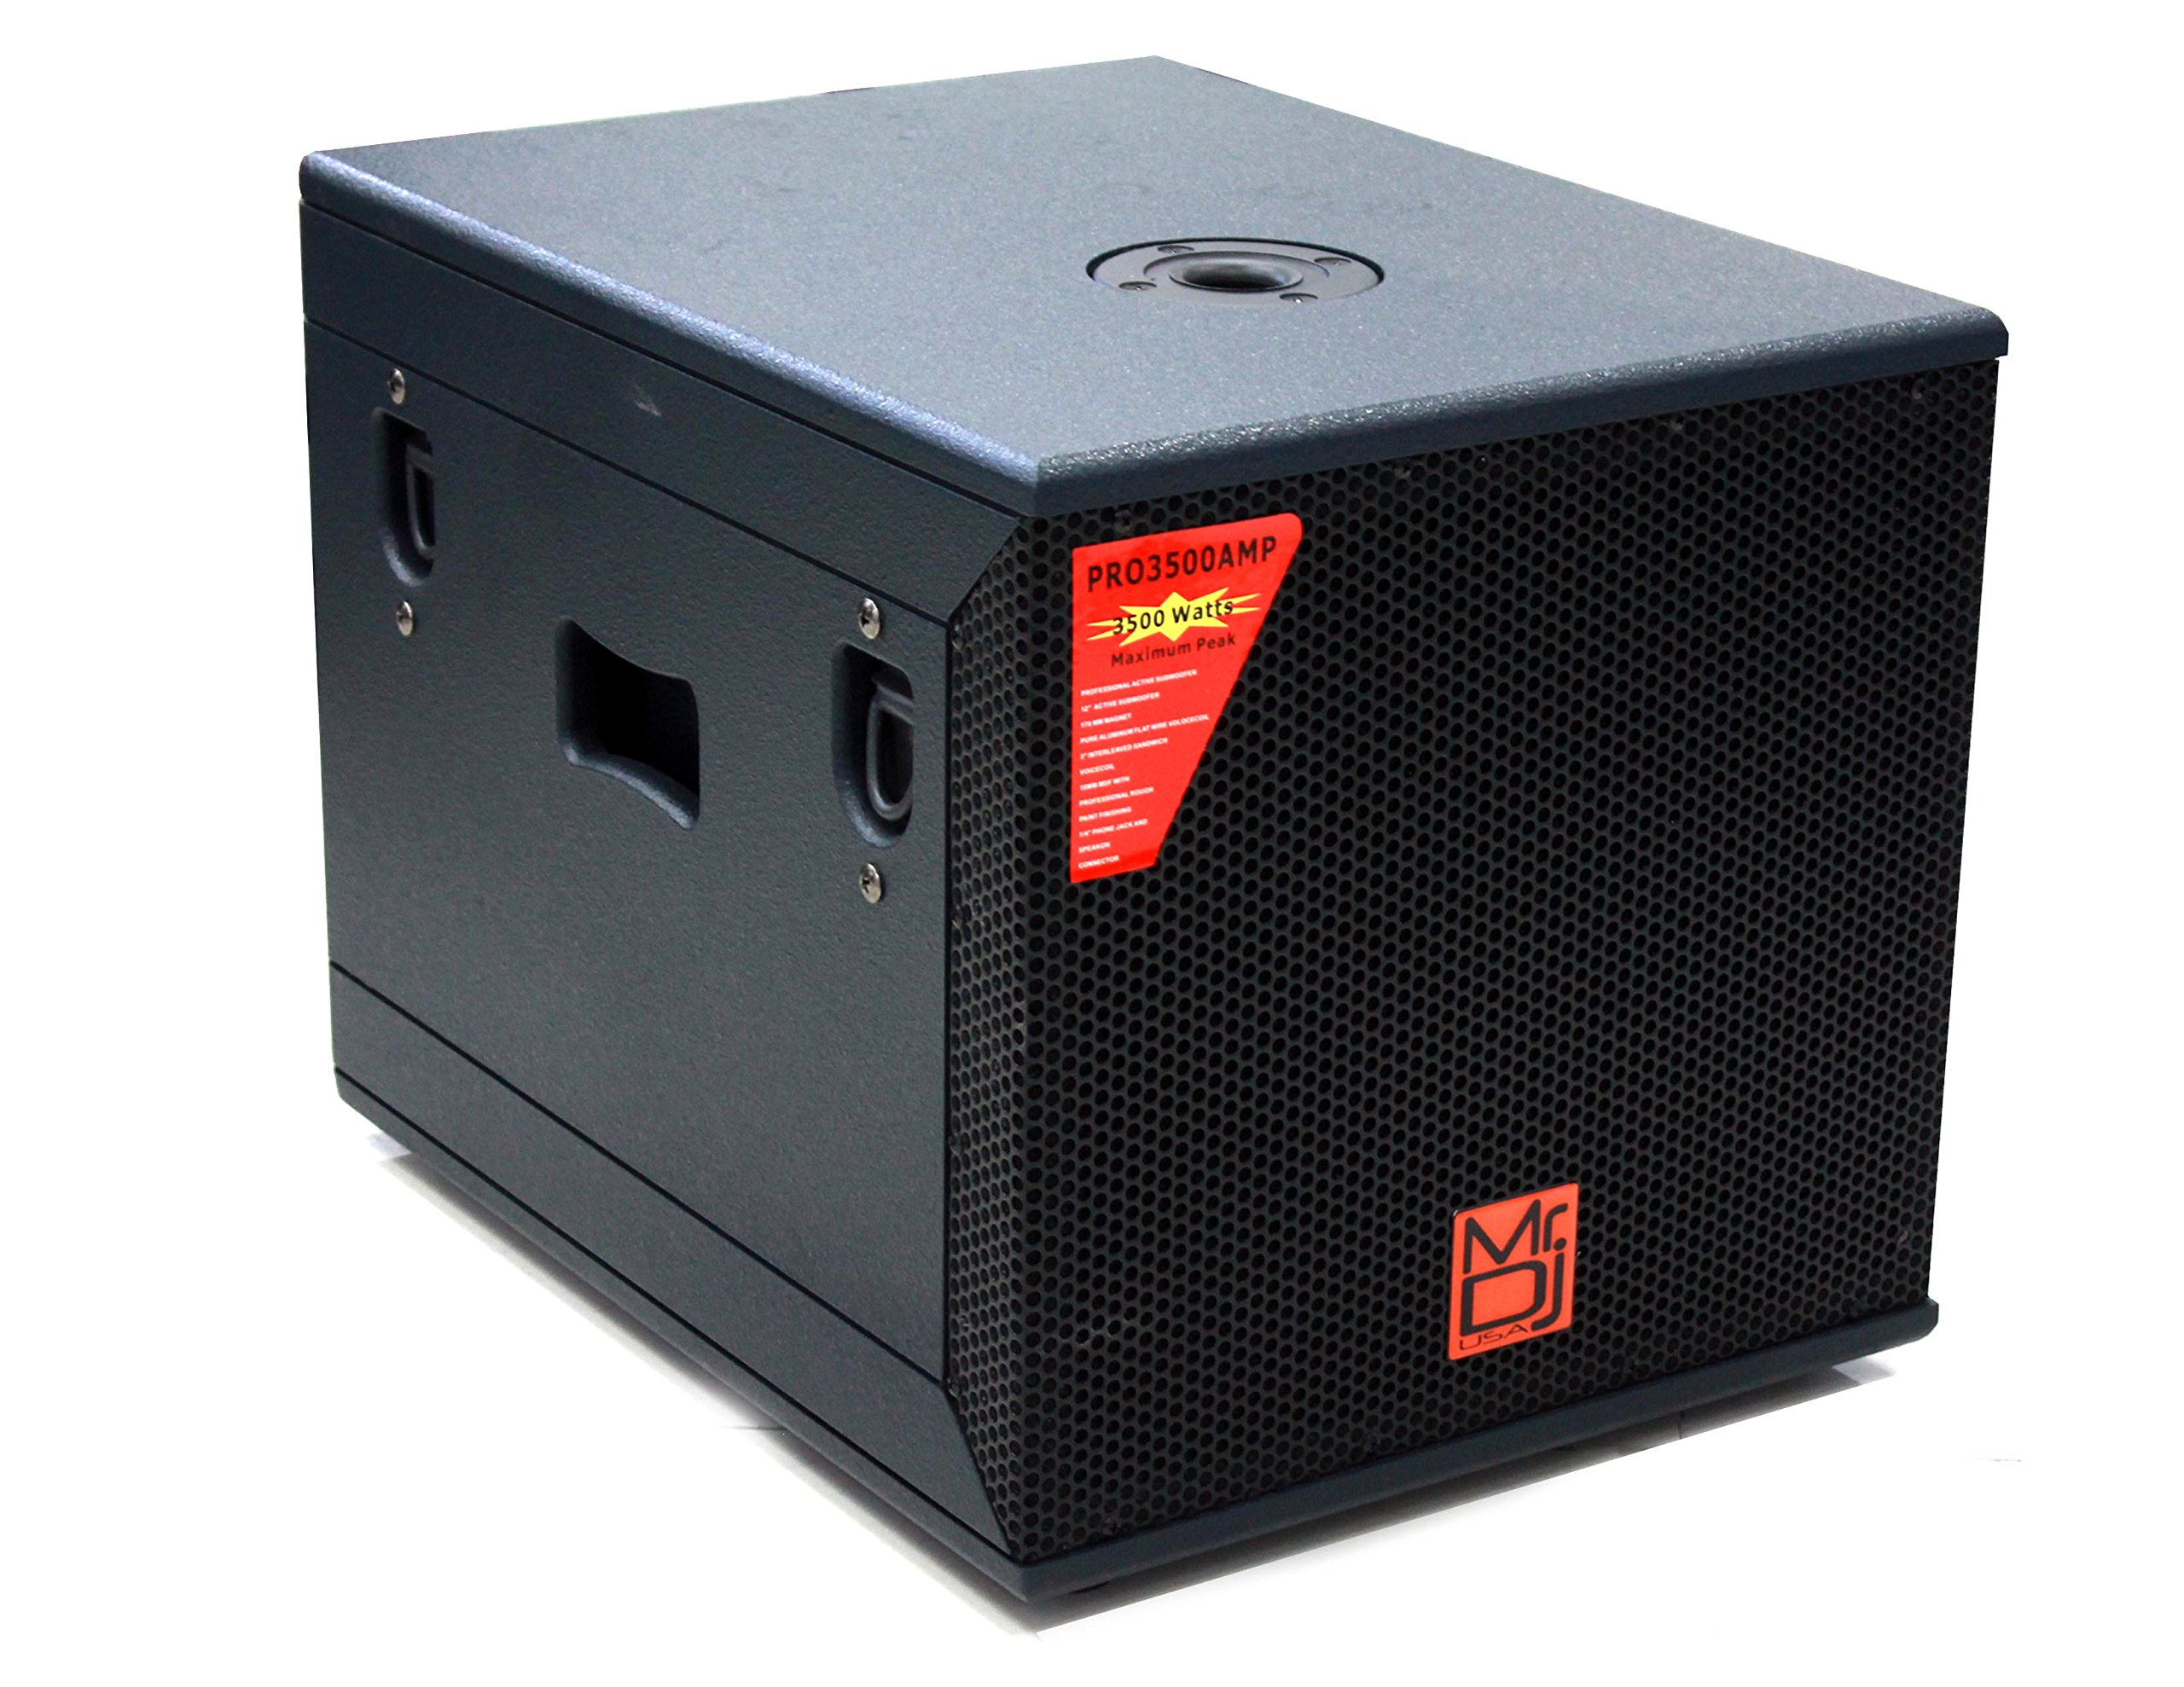 Mr. Dj PRO3500AMP 12'' 3500W Professional Series Active/Pre Amplified Subwoofer.